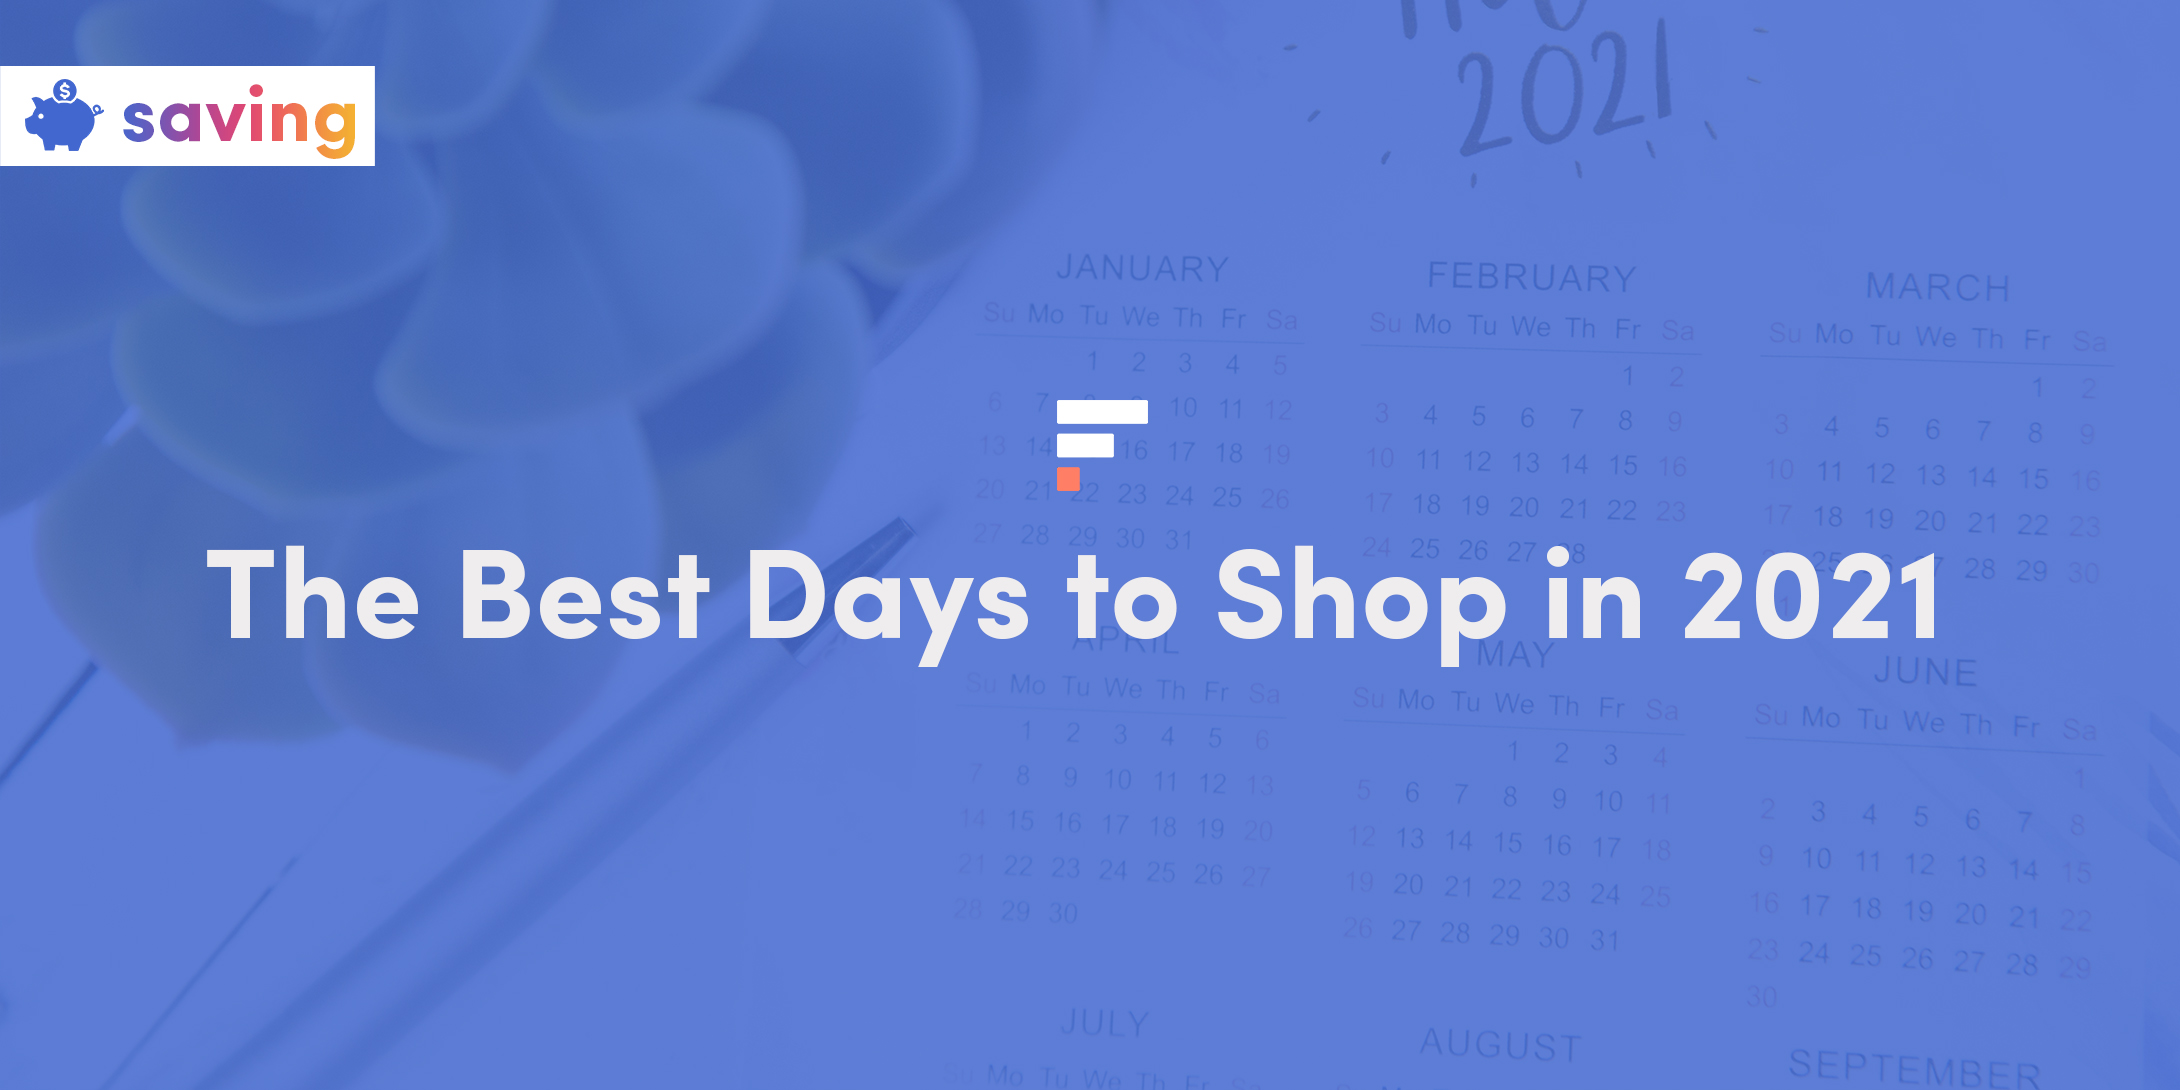 Best days to shop in 2021